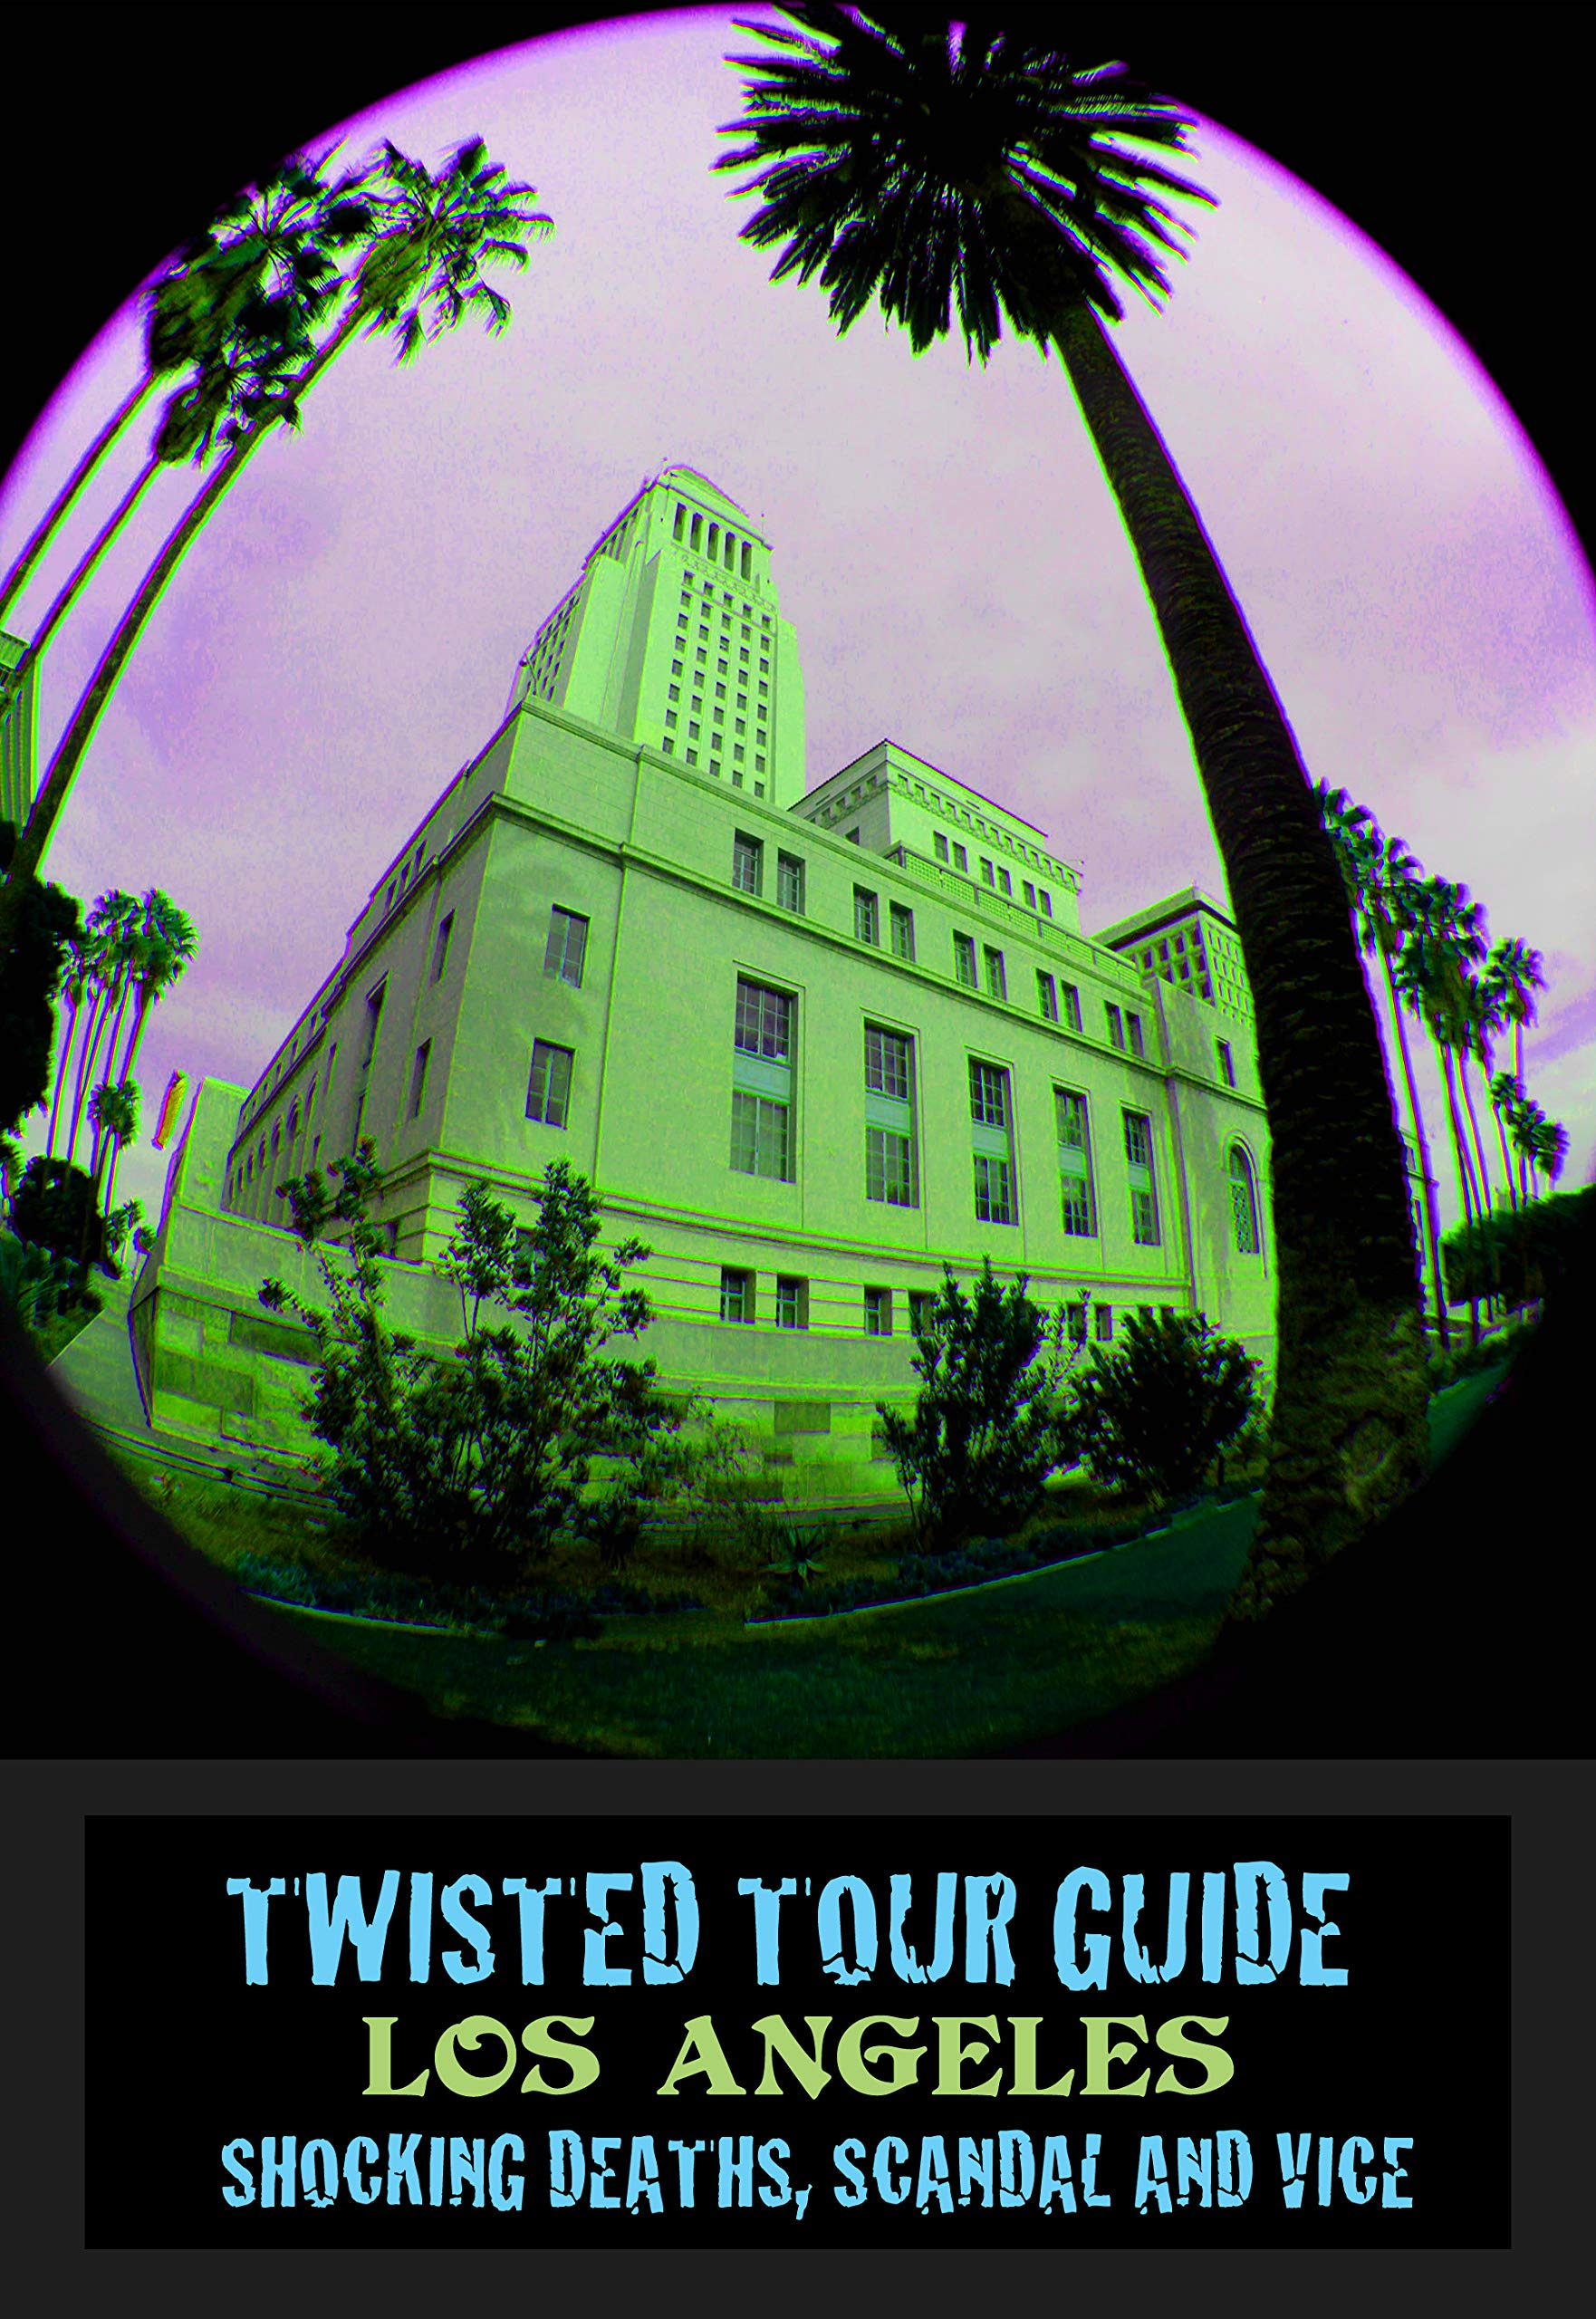 TWISTED TOUR GUIDE TO LOS ANGELES: Shocking Deaths, Scandals and Vice (Twisted Tour Guides Book 4)